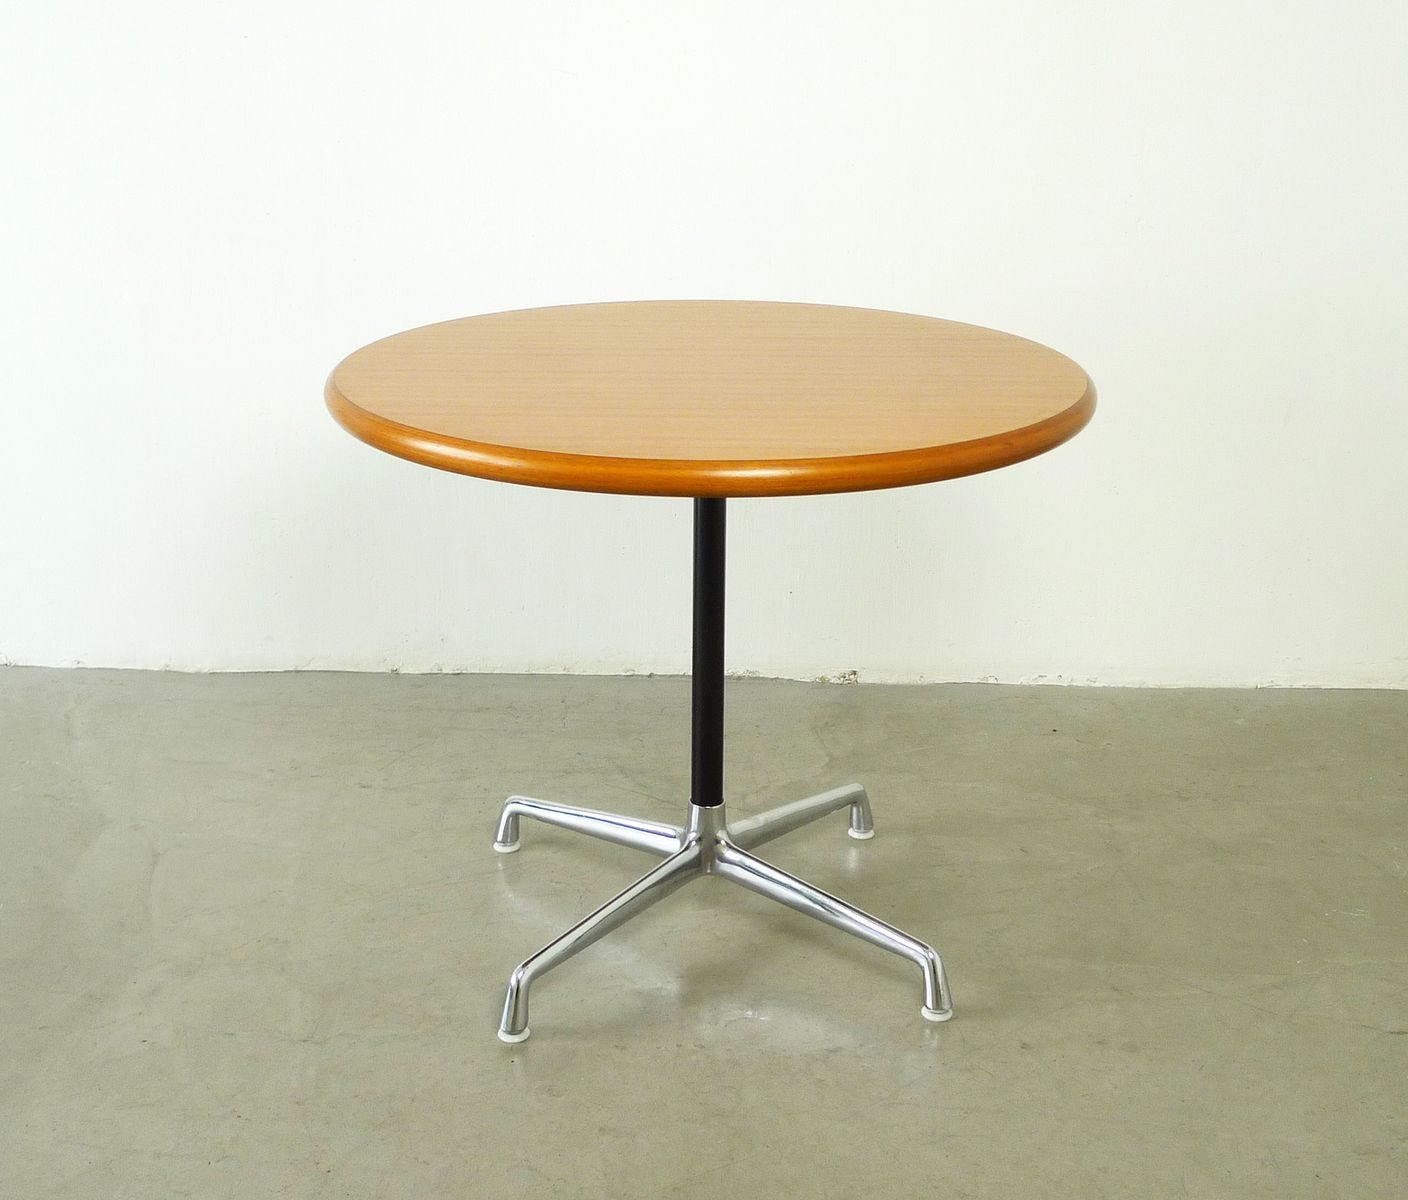 Contract table by charles ray eames for herman miller for Table charles eames